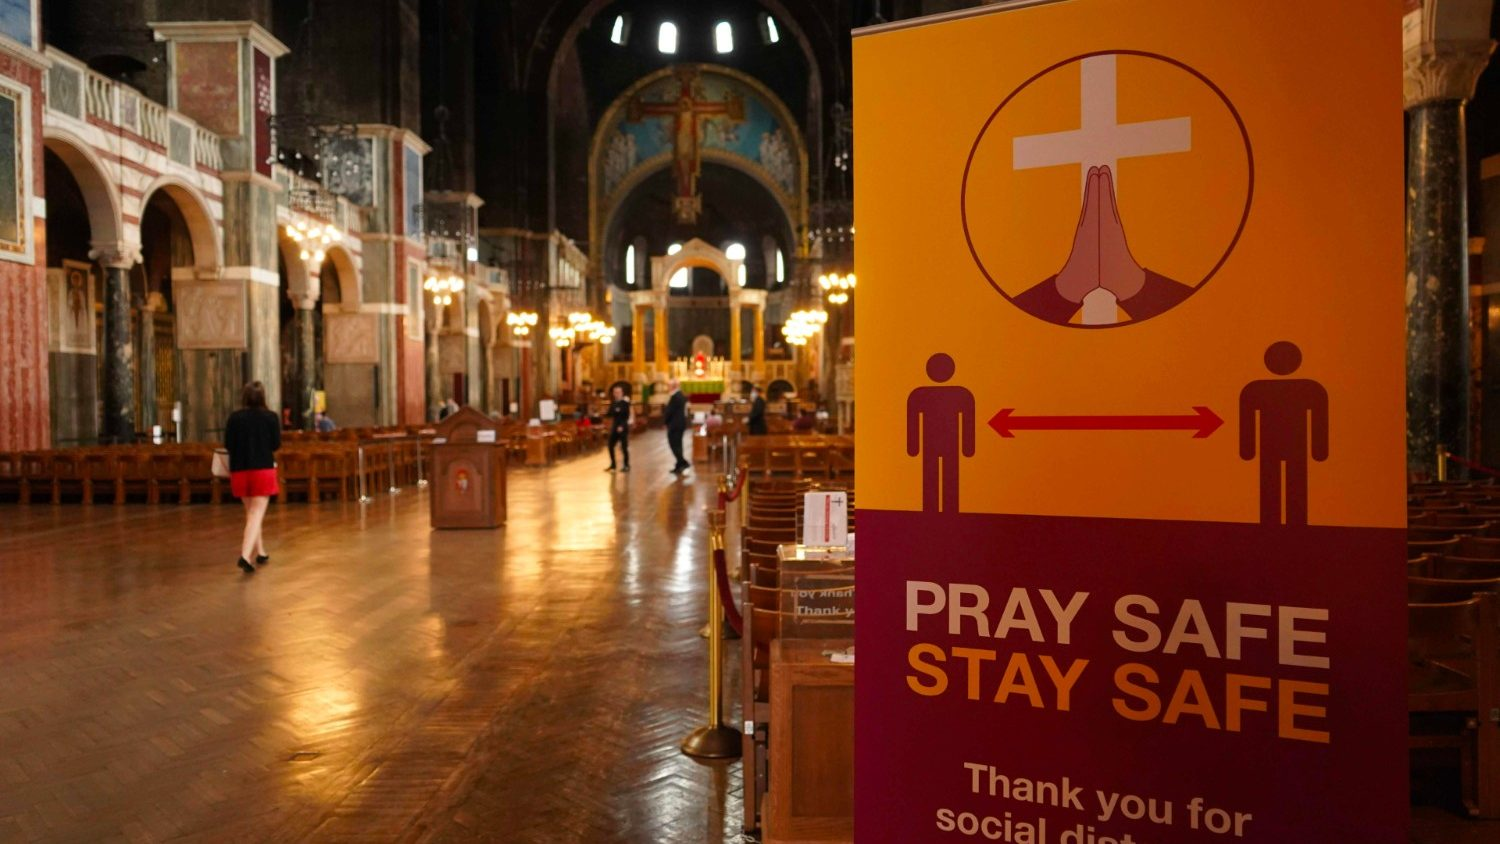 Covid-19: British government grants vital funding to England's churches - Vatican News